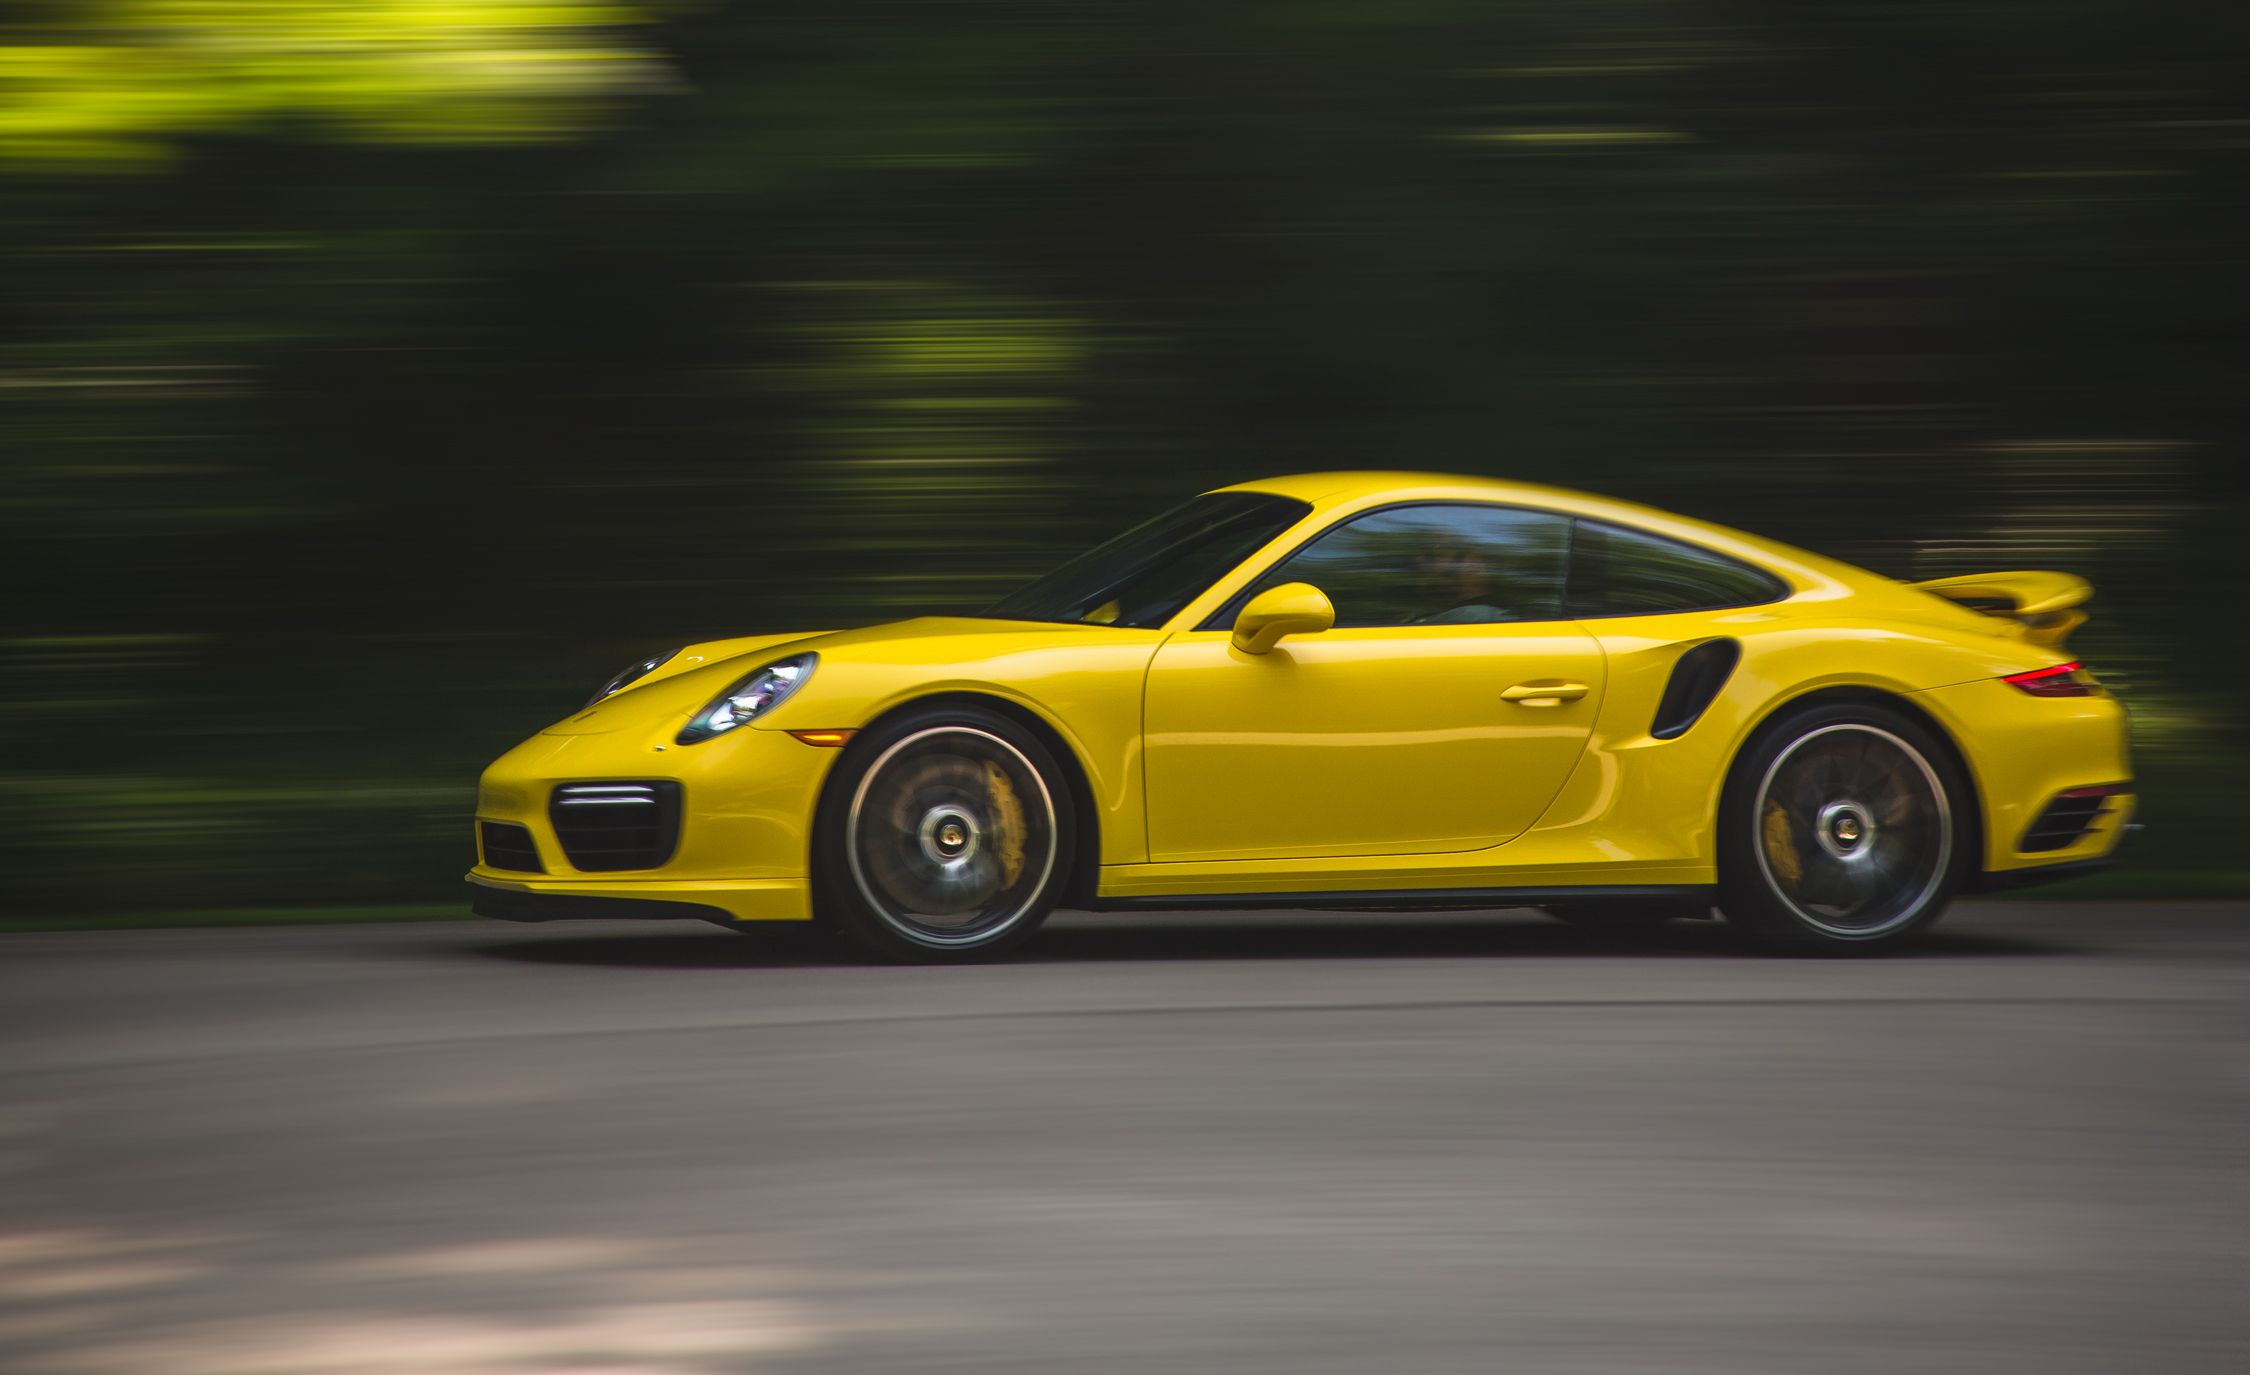 2019 Porsche 911 Turbo / Turbo S Review, Pricing, and Specs